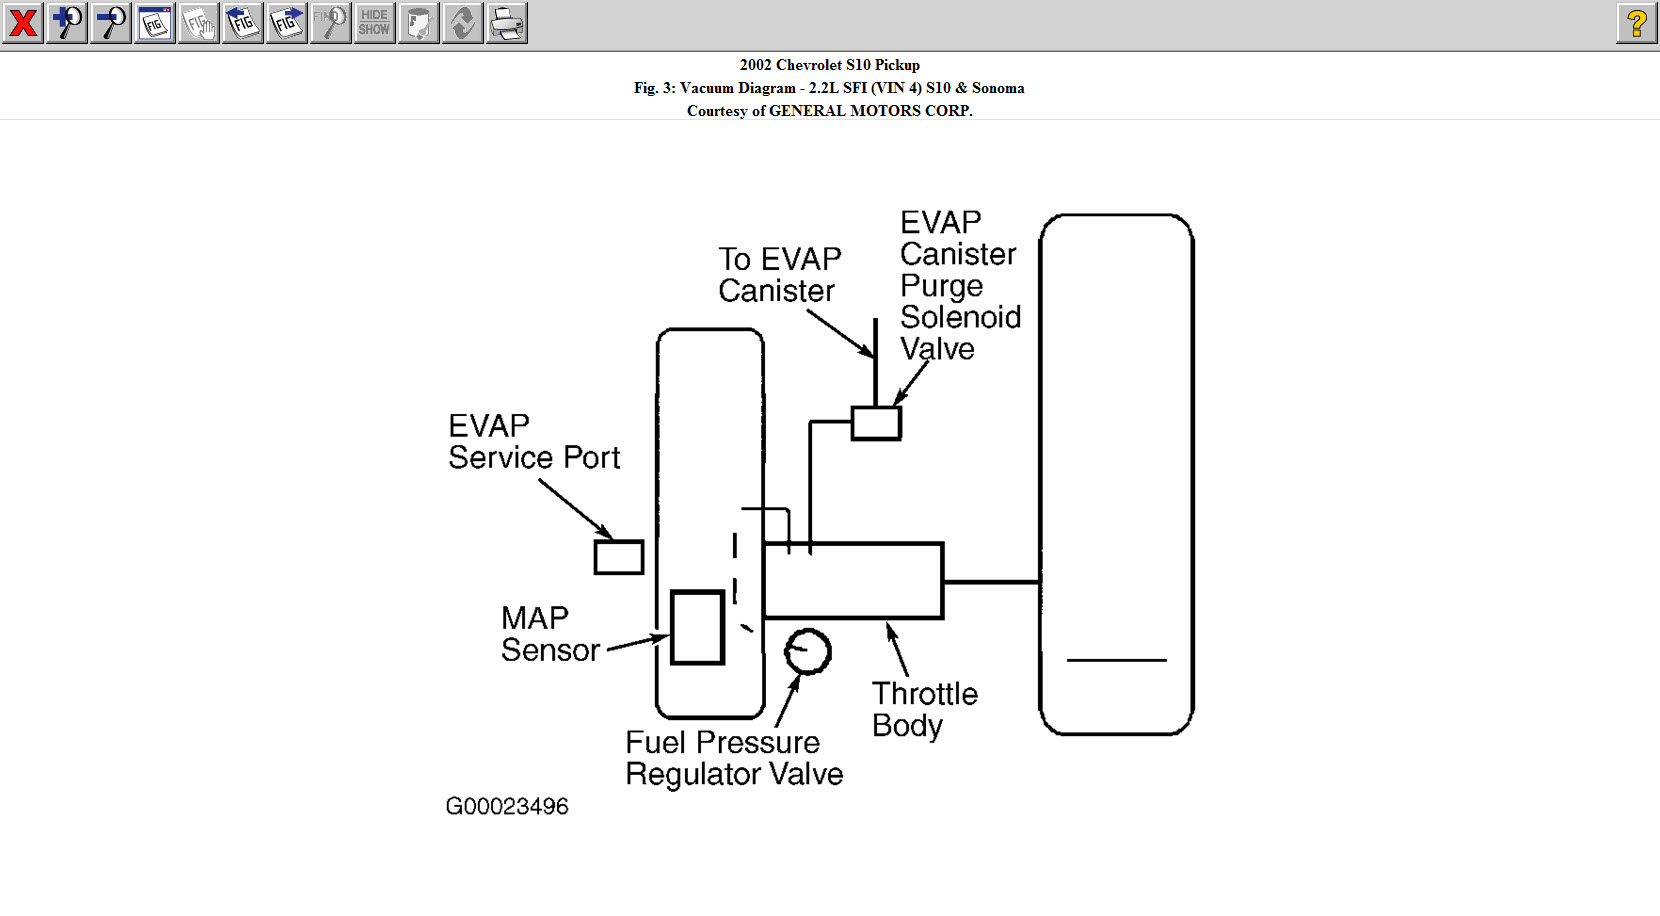 2002 S10 Vacuum Line Diagram Manual Of Wiring 2001 Abs System For Chevrolet Rh 2carpros Com Chevy 43 22